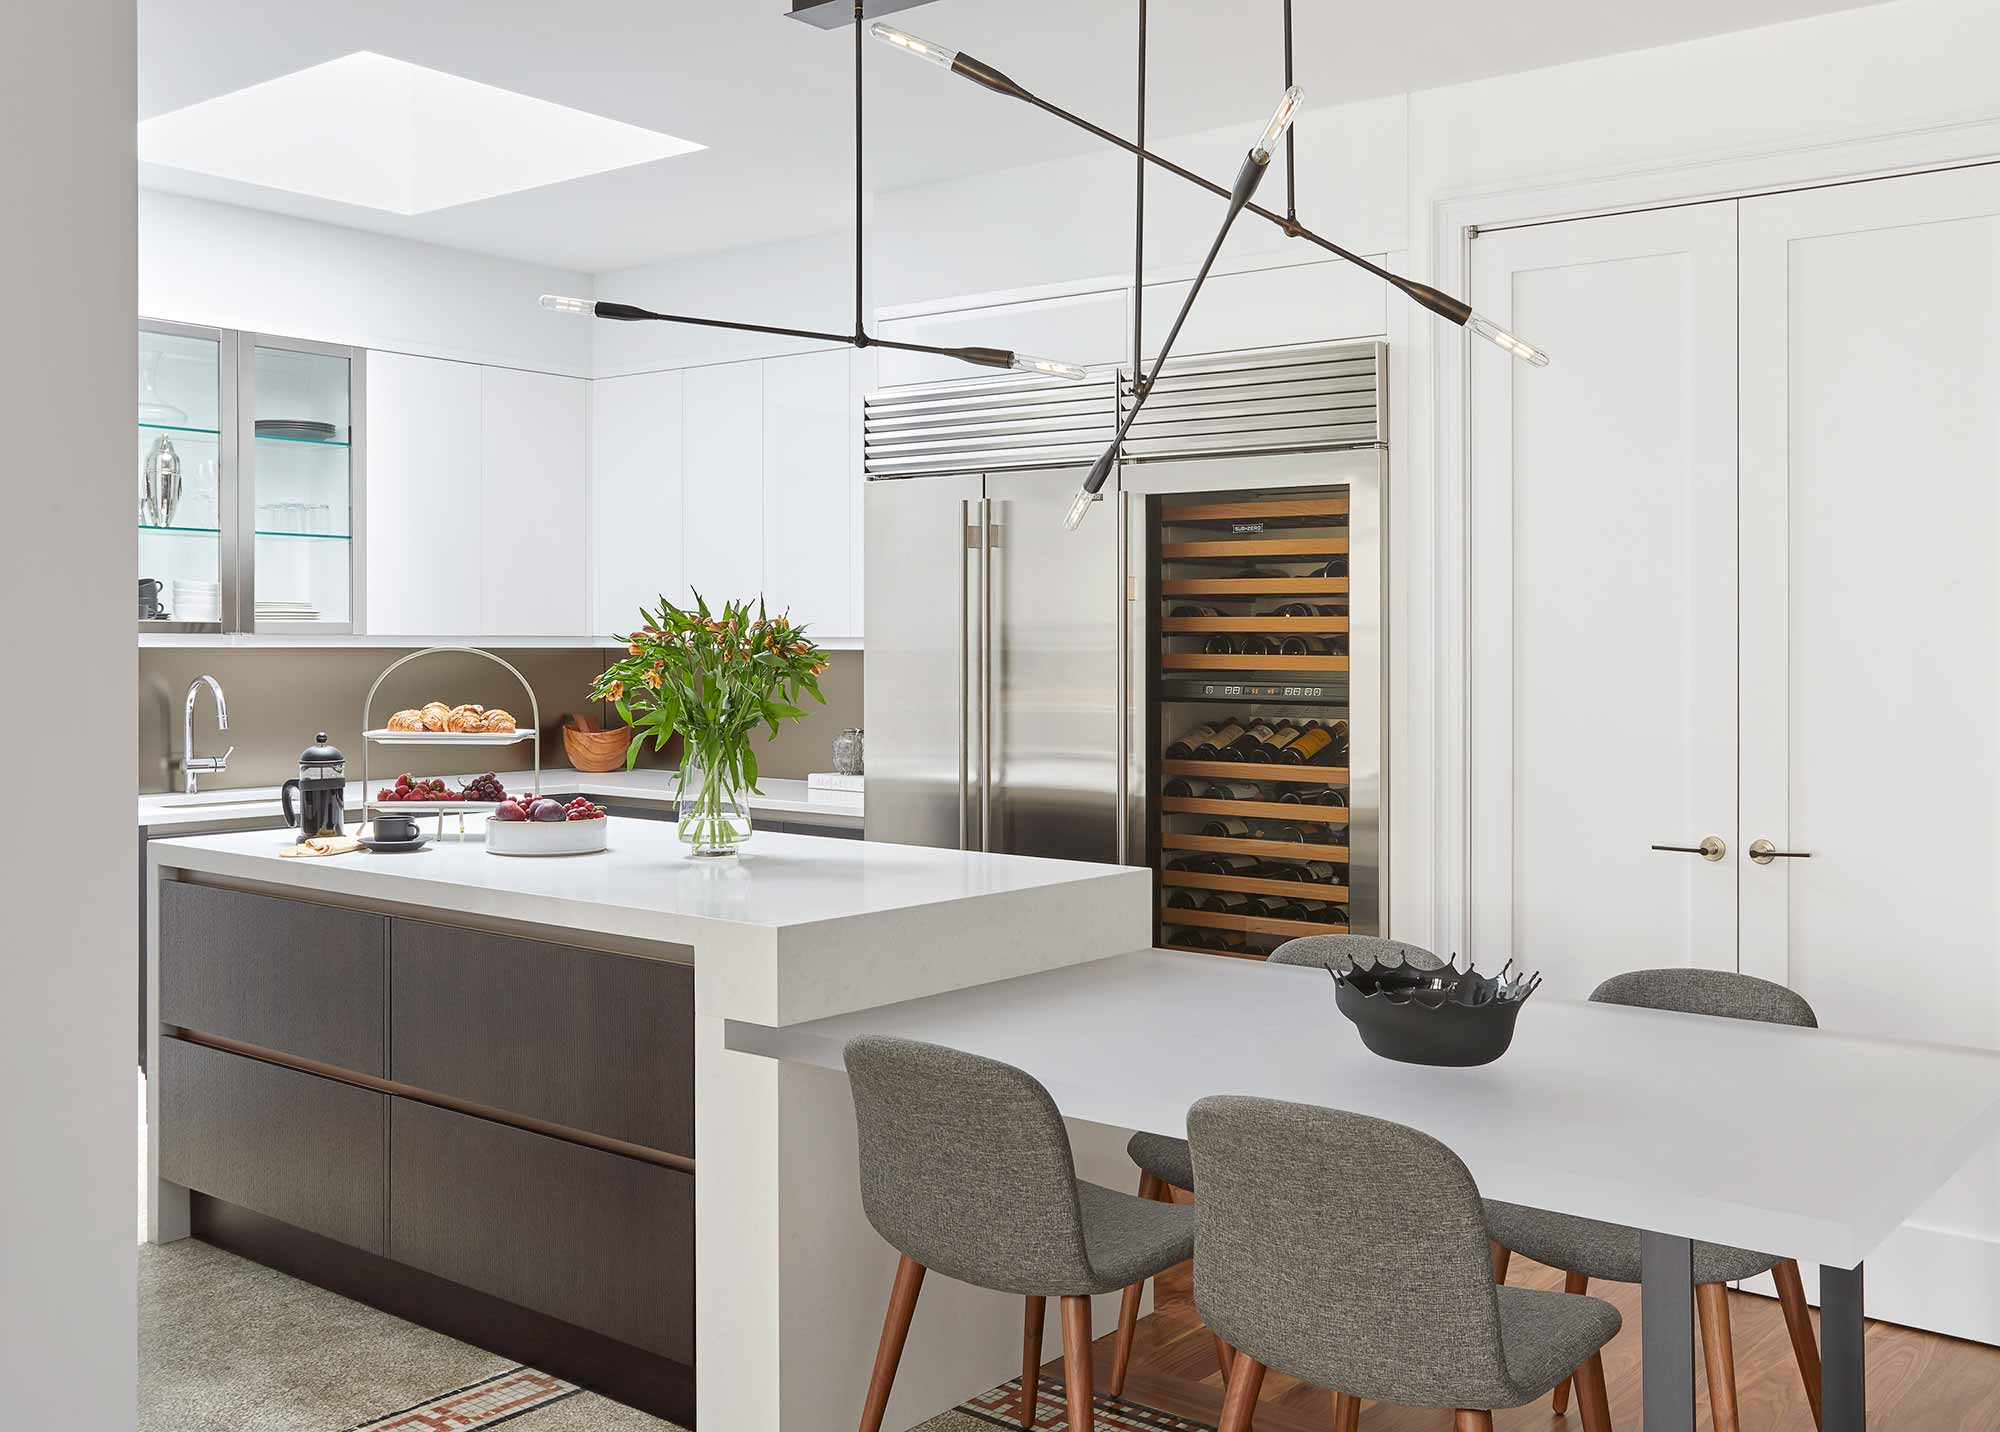 White kitchen with stainless steel appliances and swing arm pendant light designed by Darci Hether